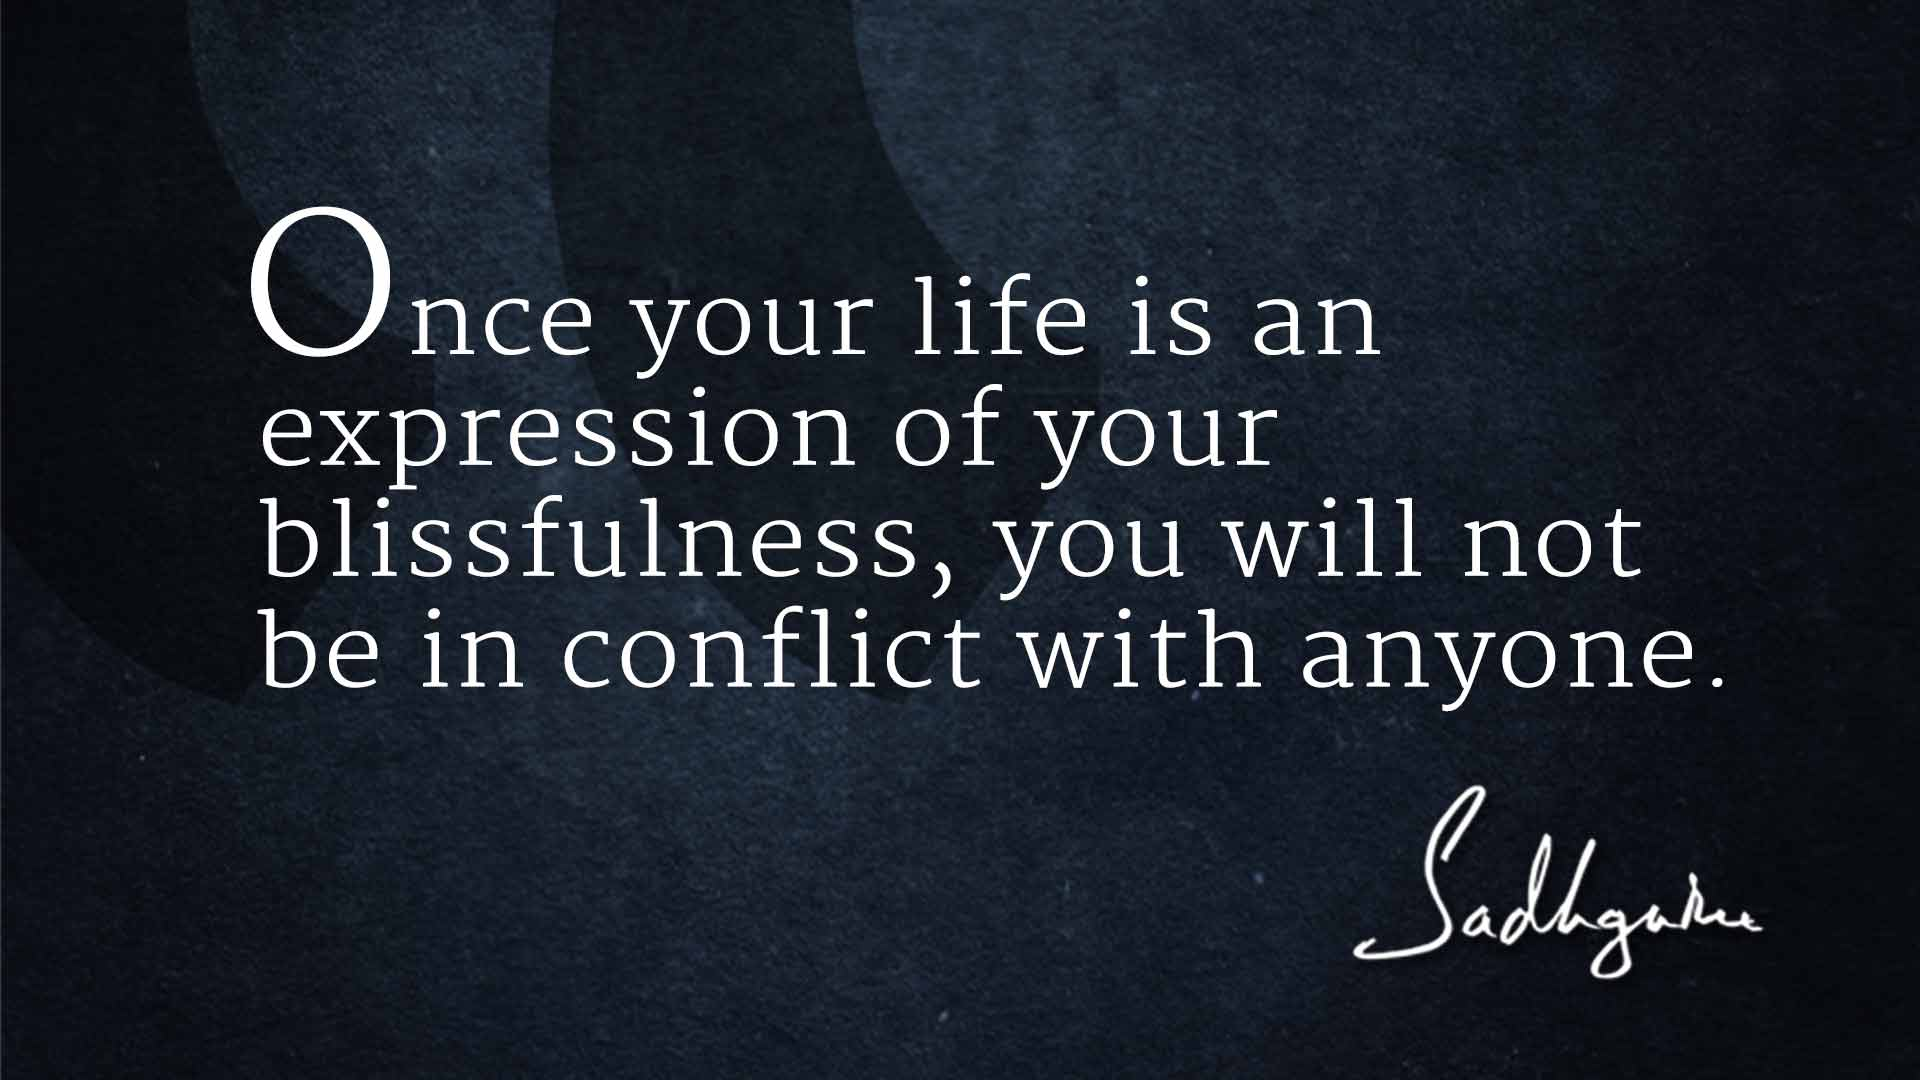 Sadhguru Quotes on Life  Life Quotes to Inspire